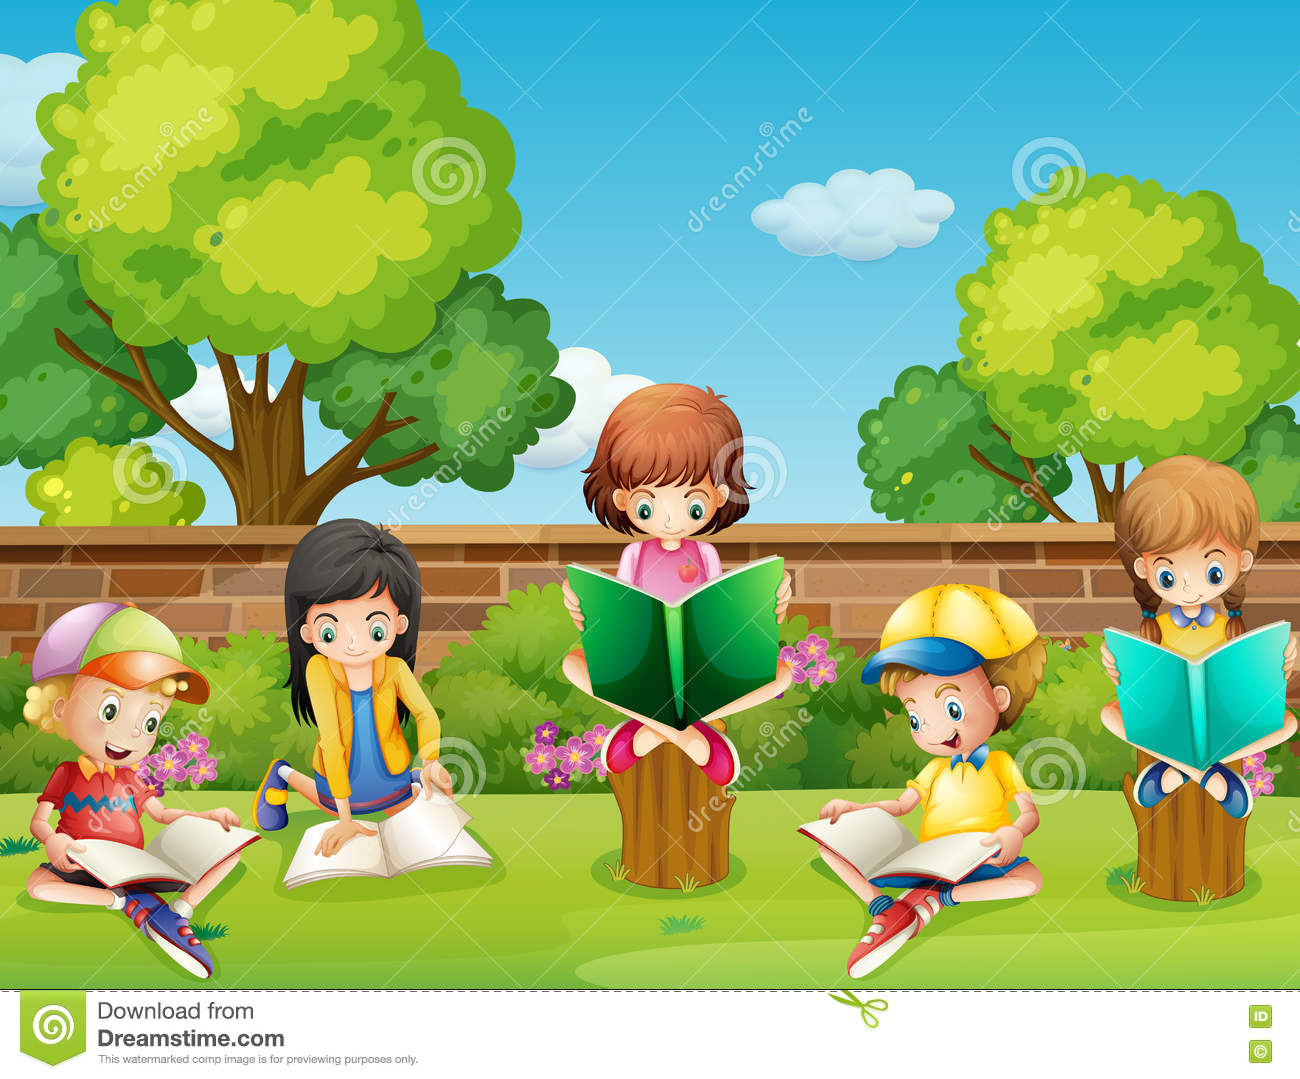 oxford reading tree clip art download - photo #46